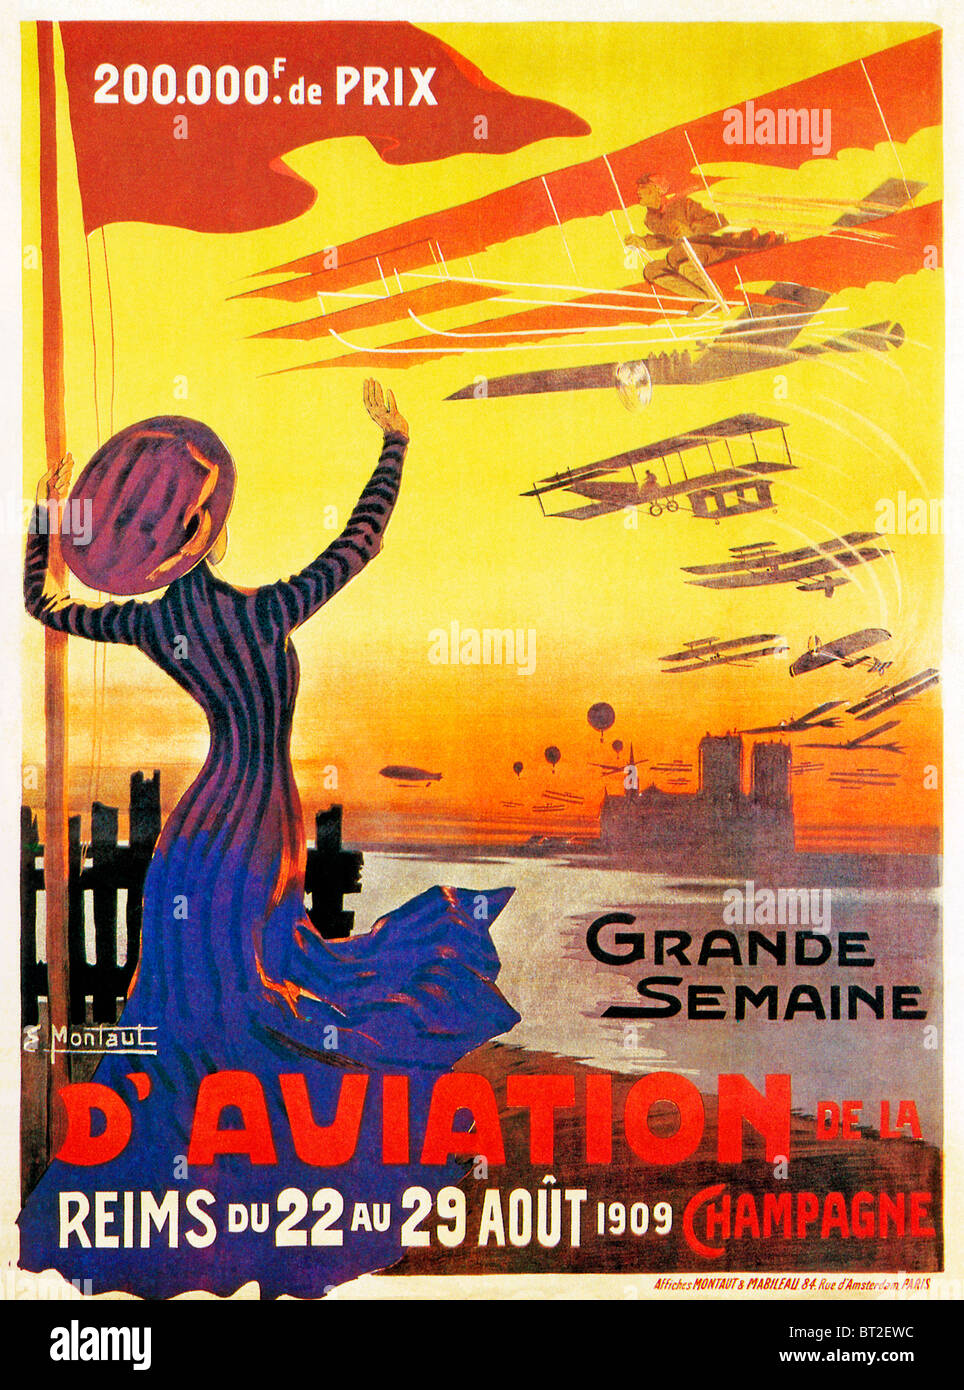 Grande Semaine dAviation, Reims, 1909 poster for the air races in the Champagne region of France - Stock Image